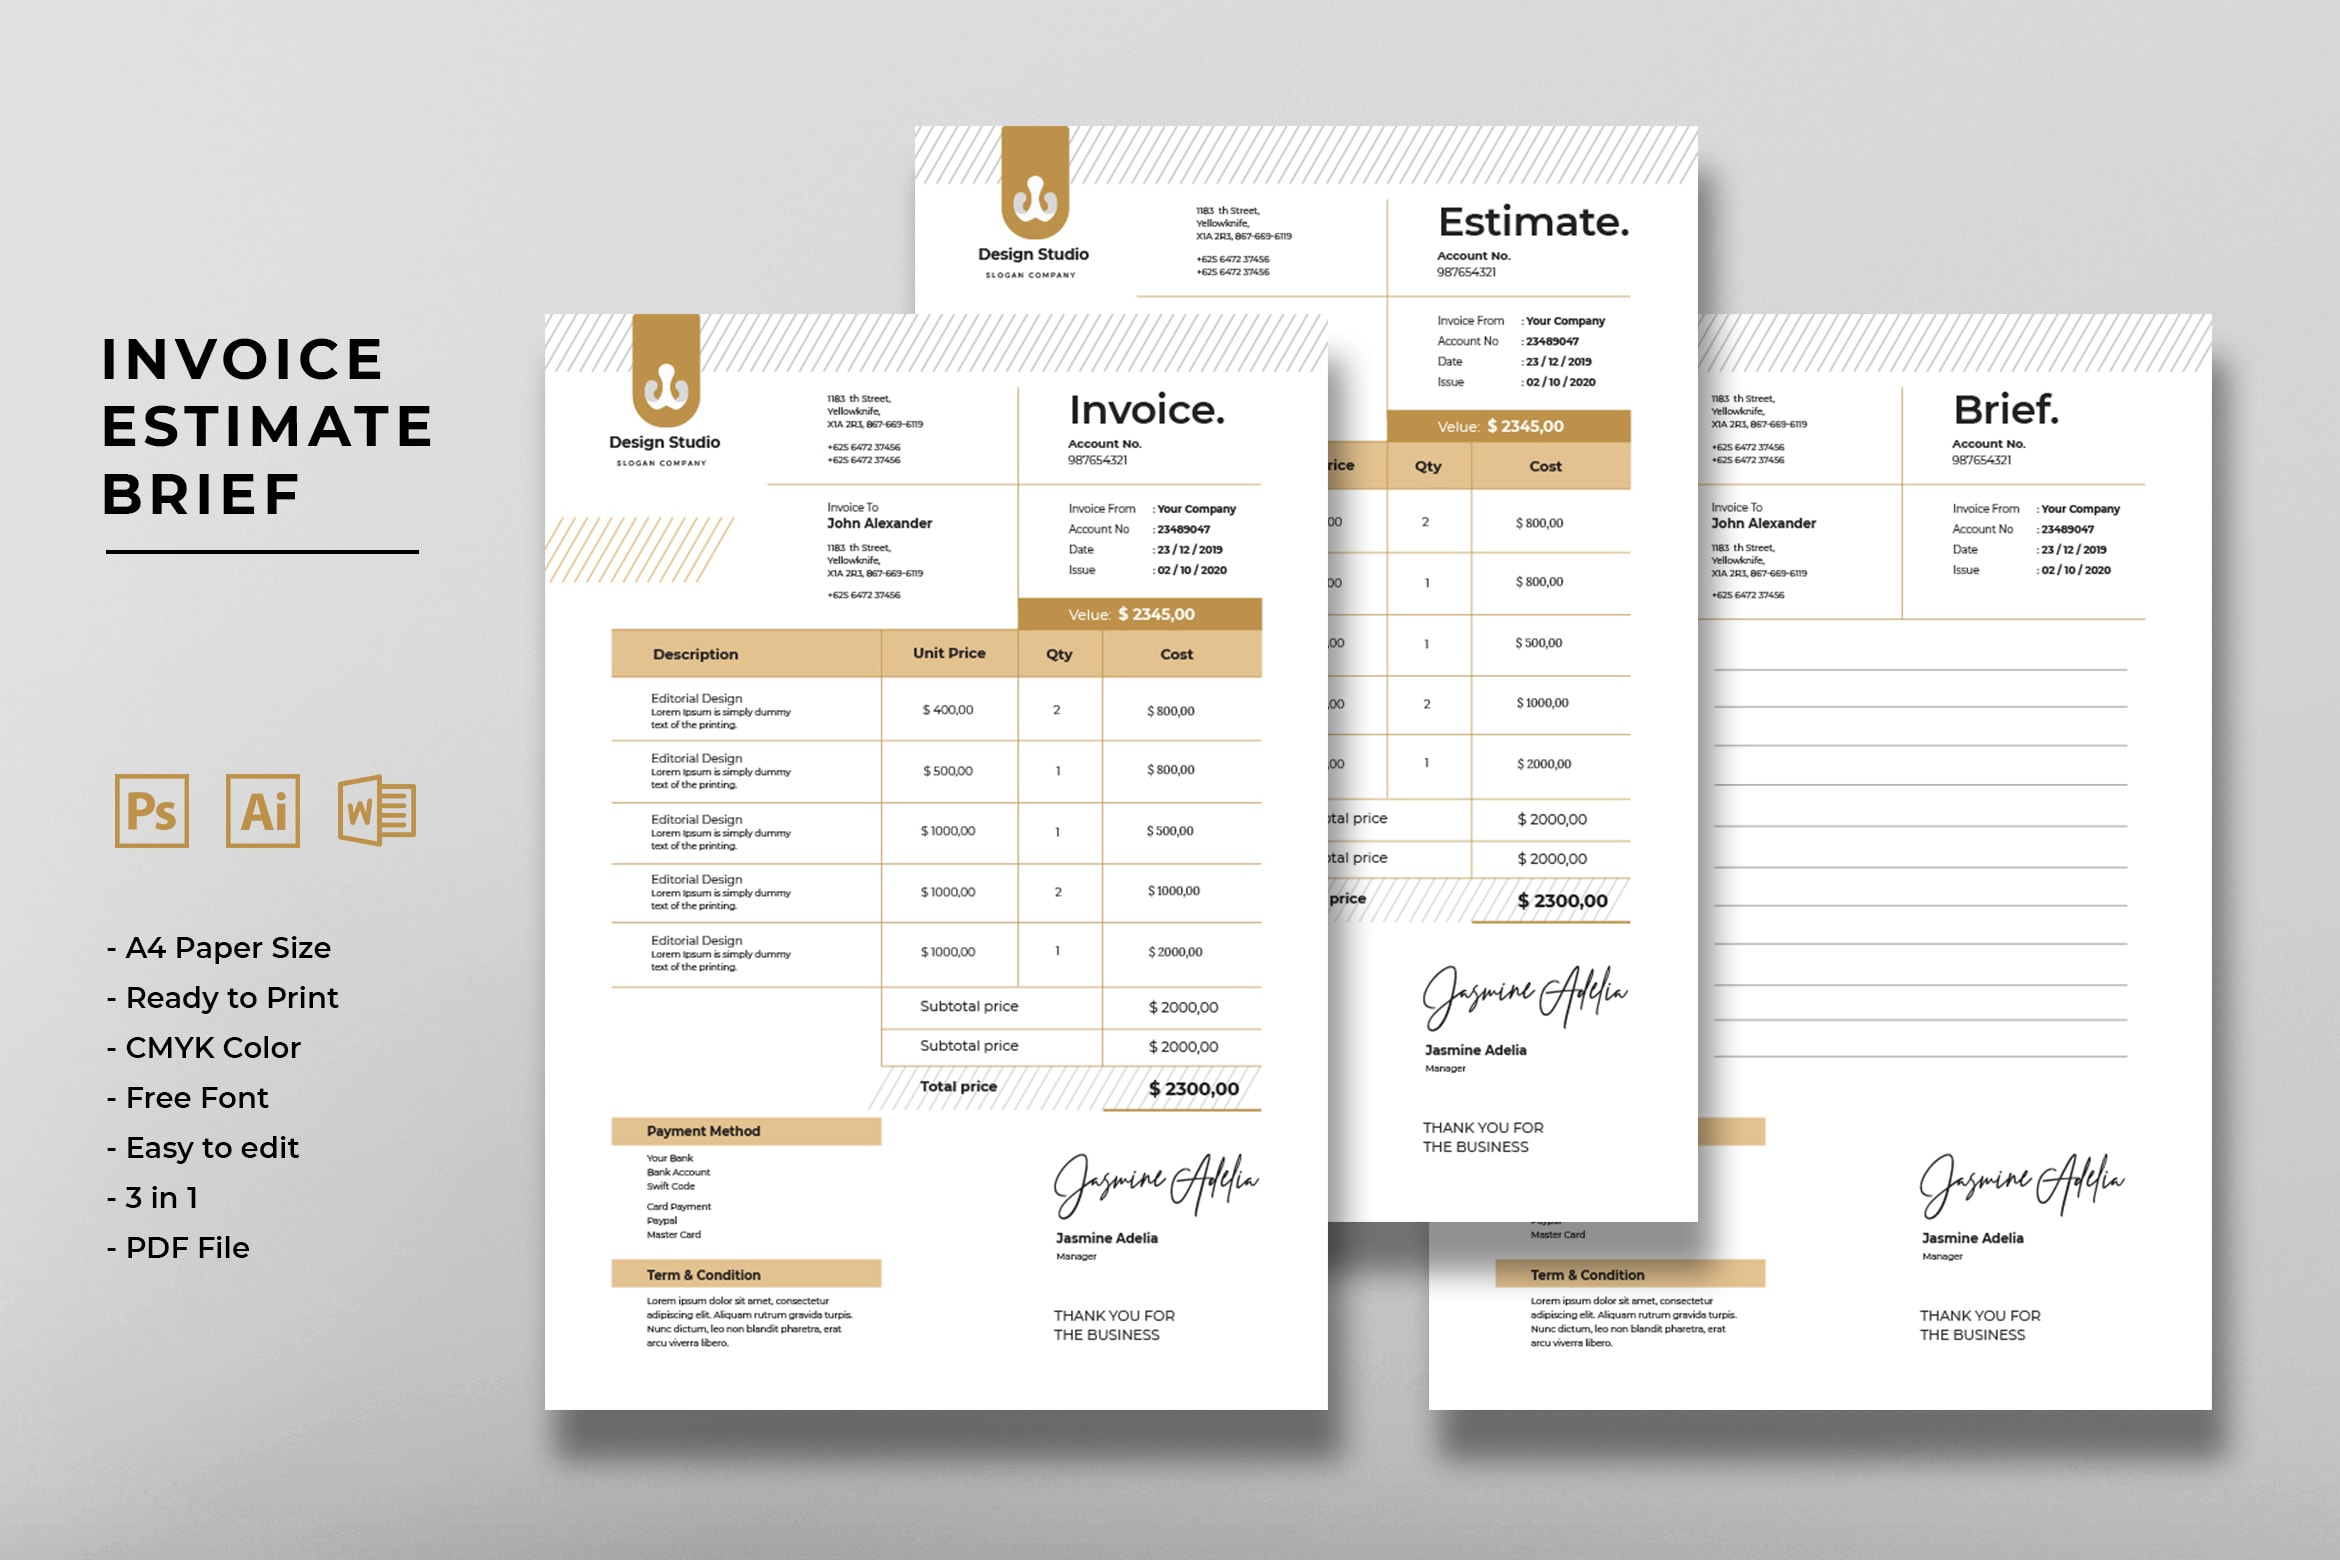 Invoice - Graphic Design Studio